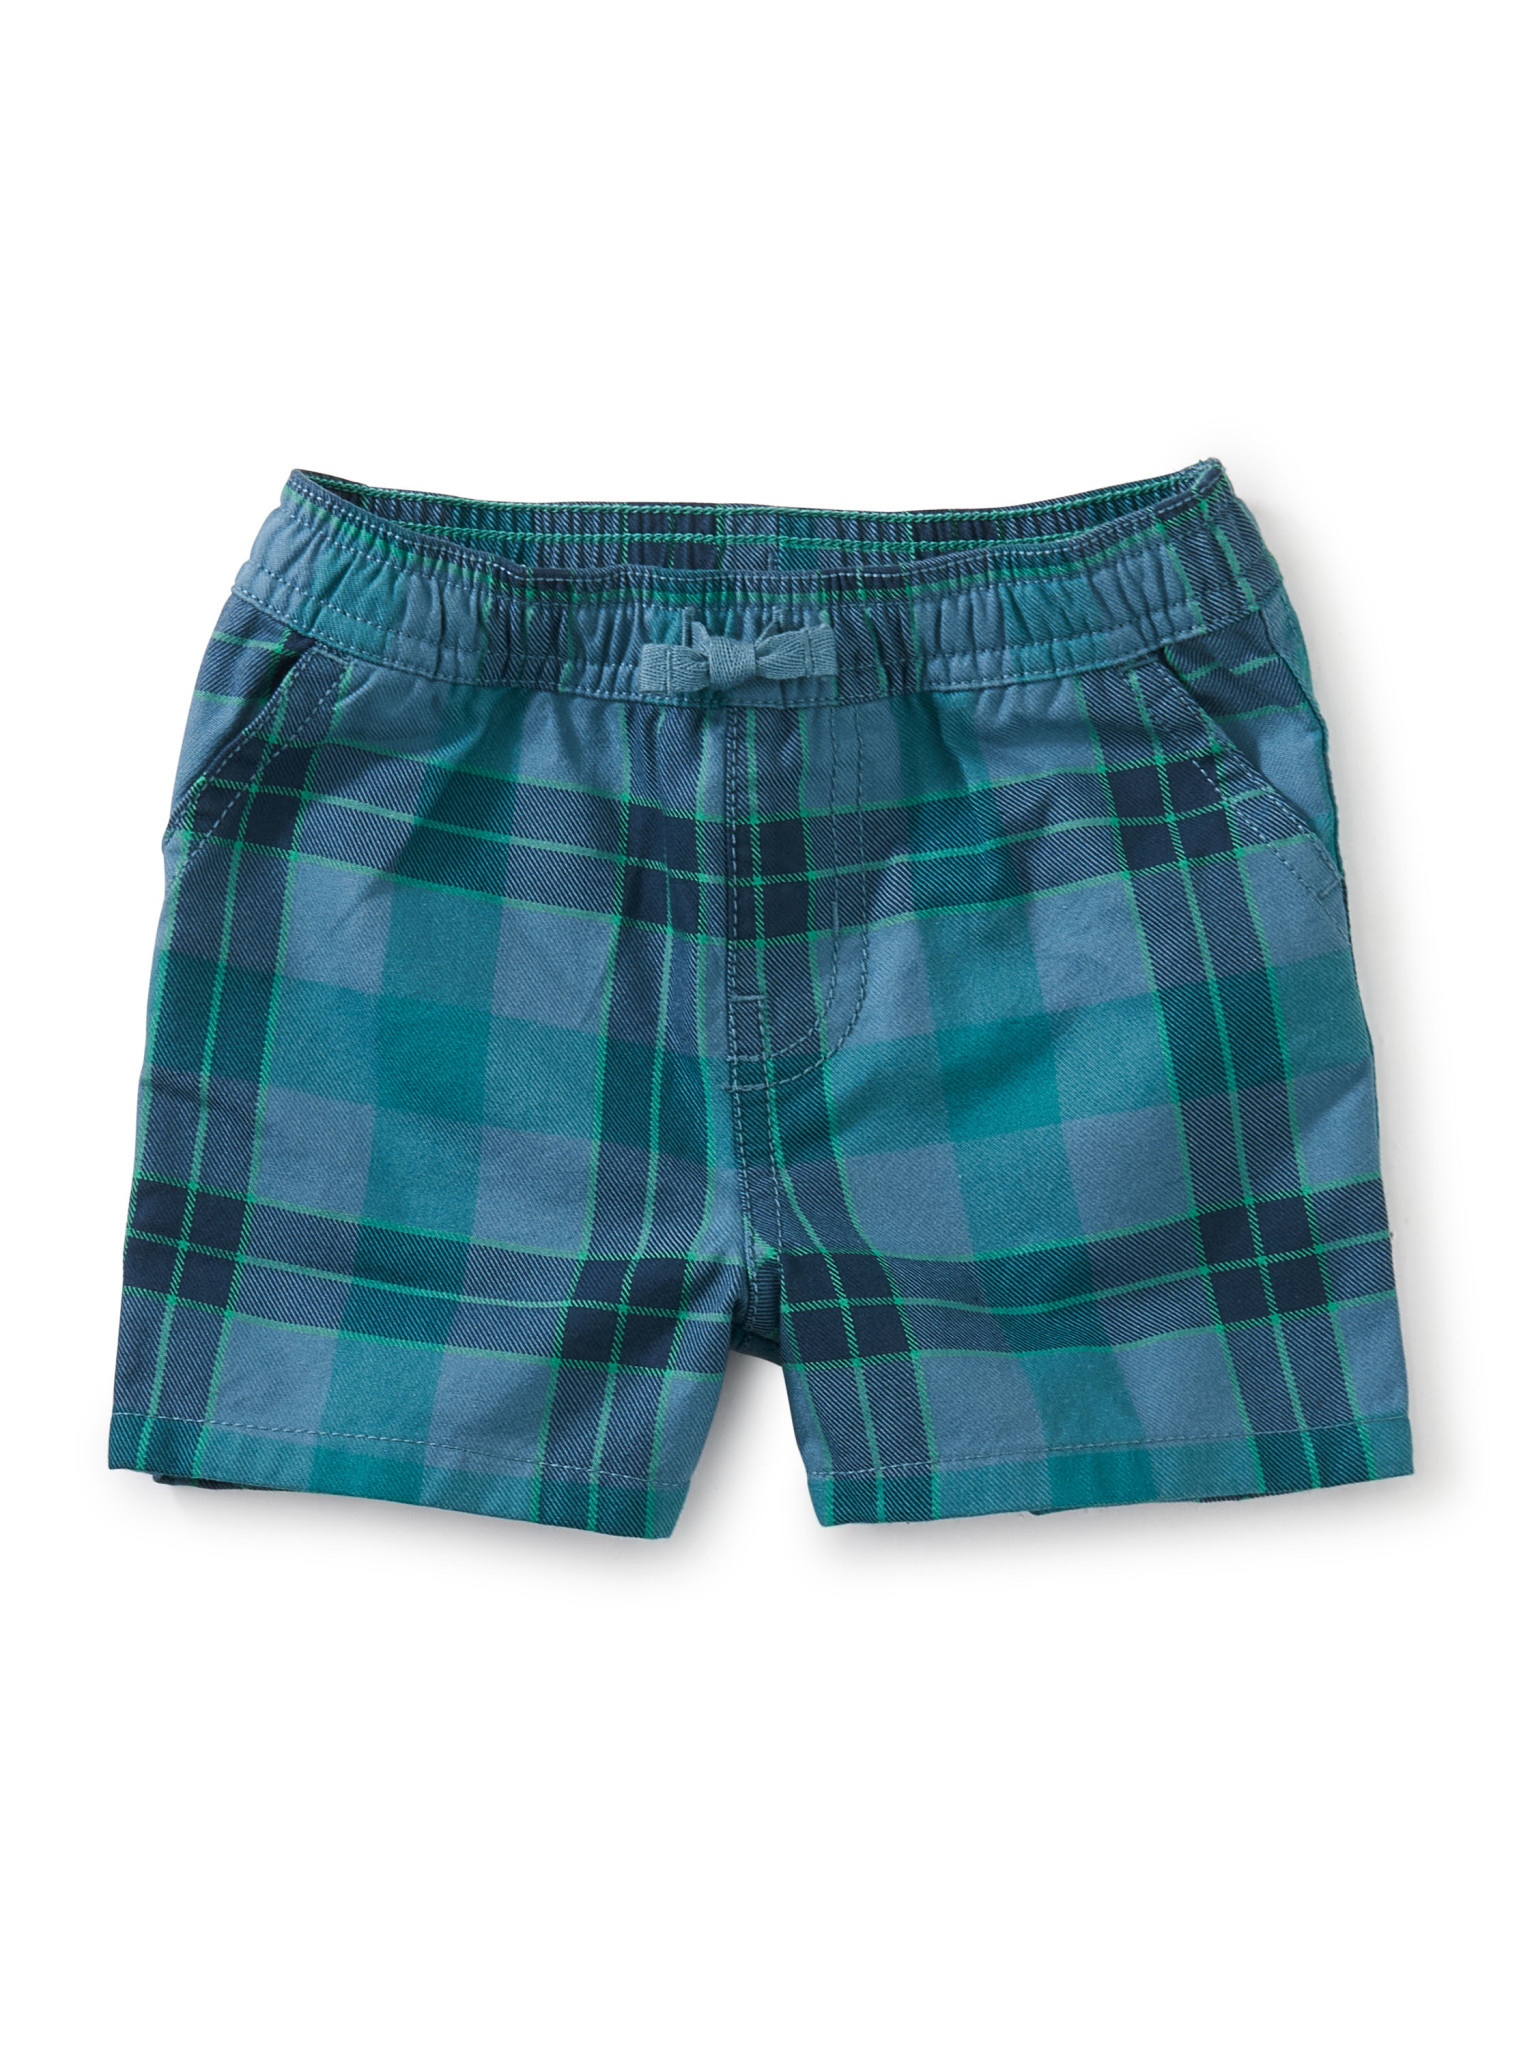 Tea Collection Plaid Discovery Baby Shorts- Tonal Plaid